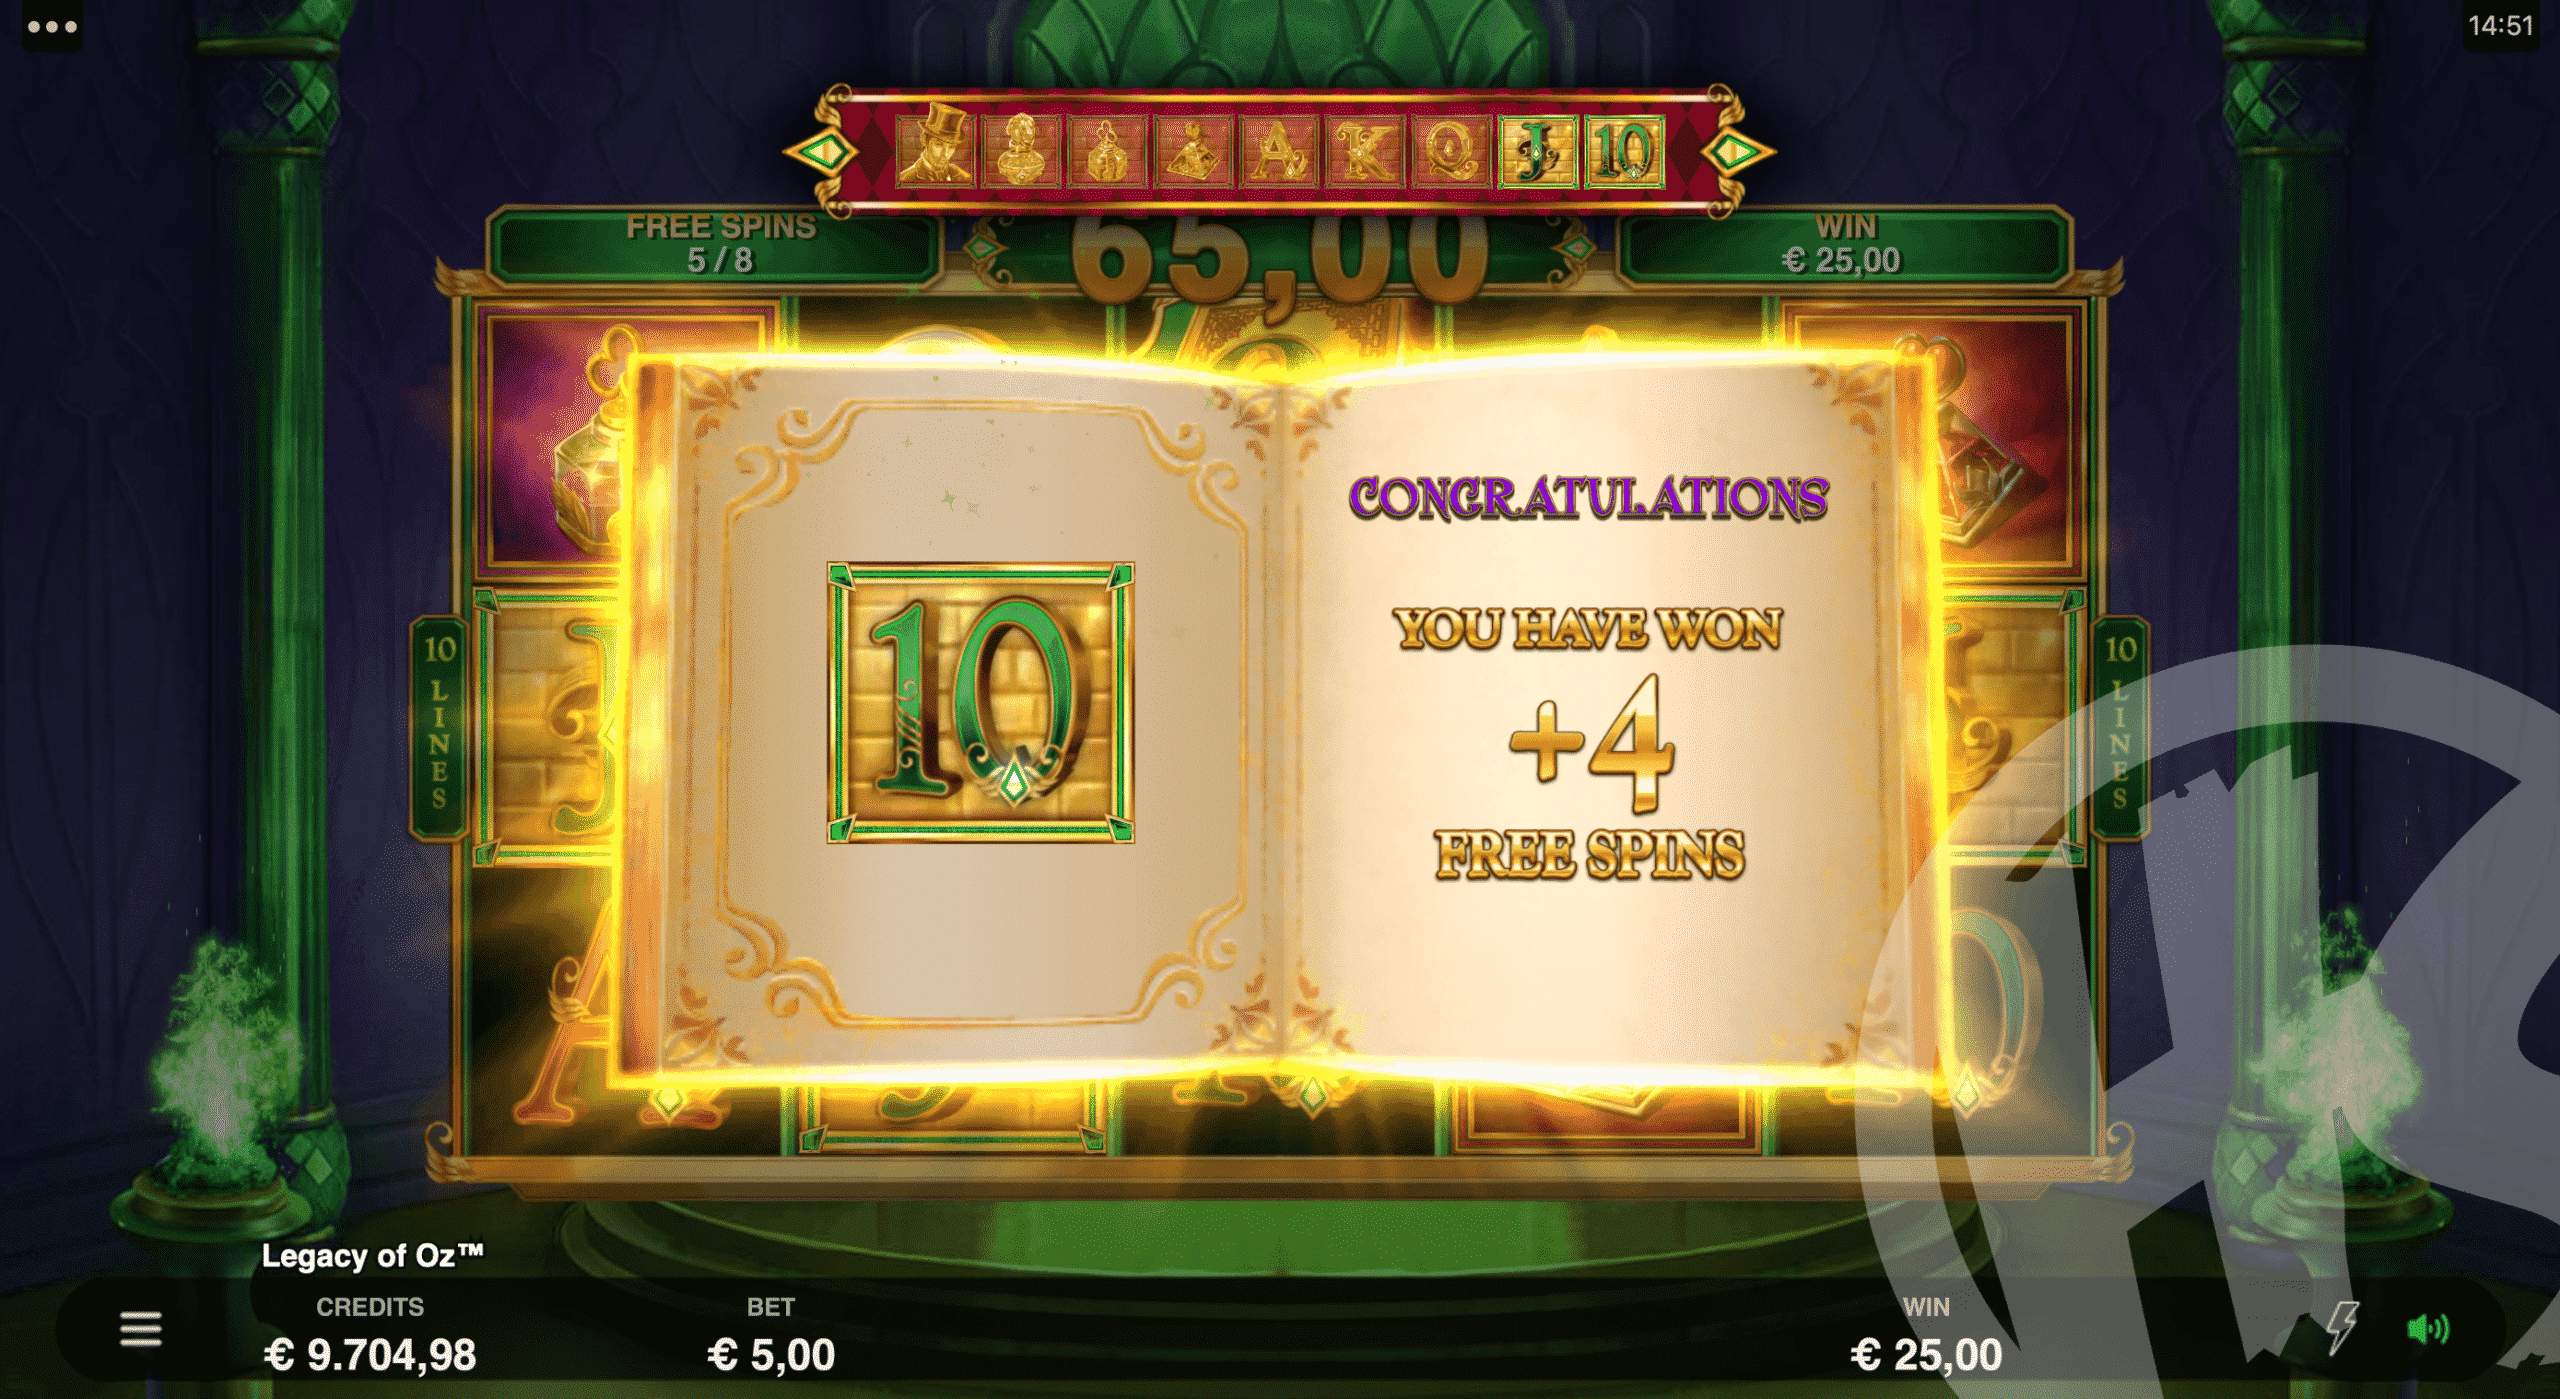 2 Scatters Retrigger Free Spins